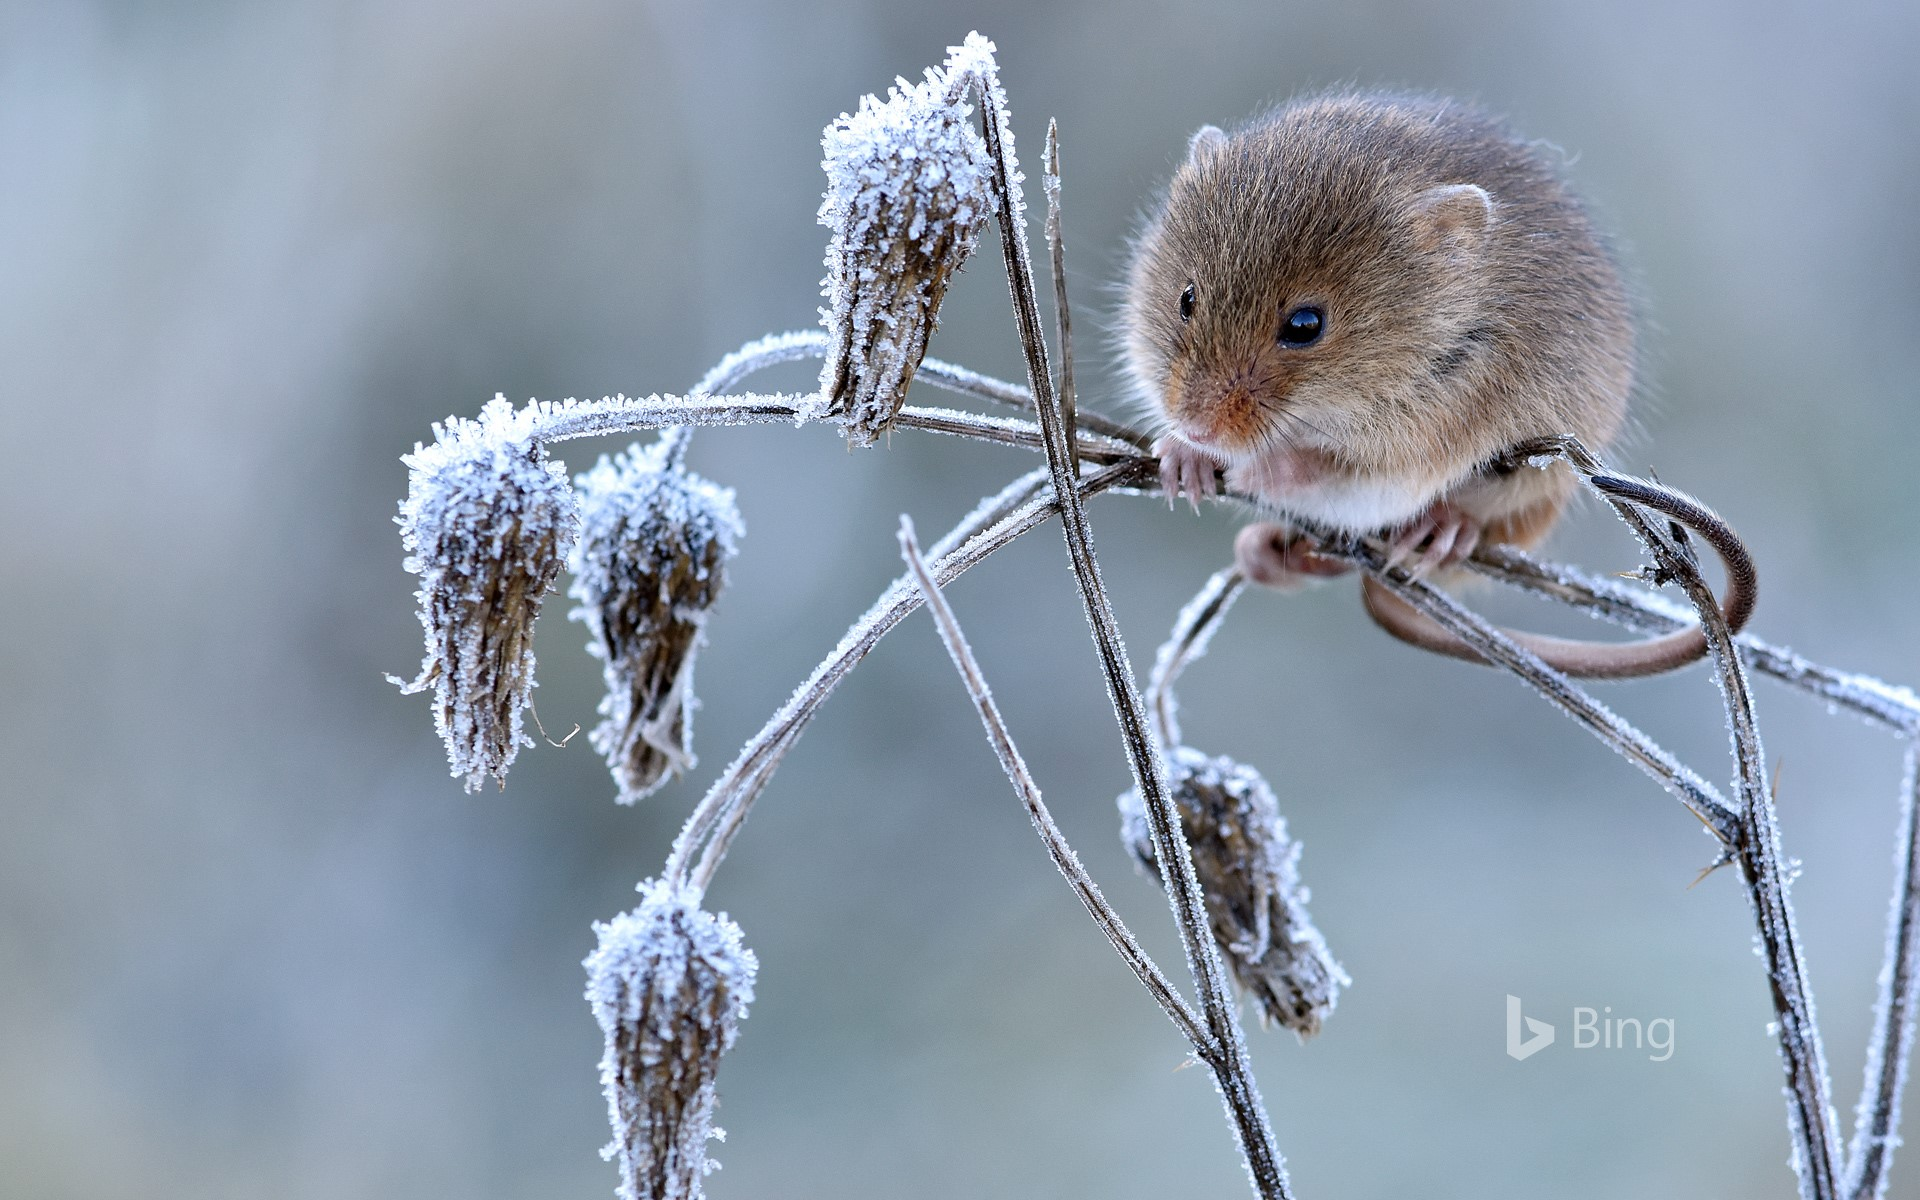 Harvest mouse climbing on frosty seedhead, Hertfordshire